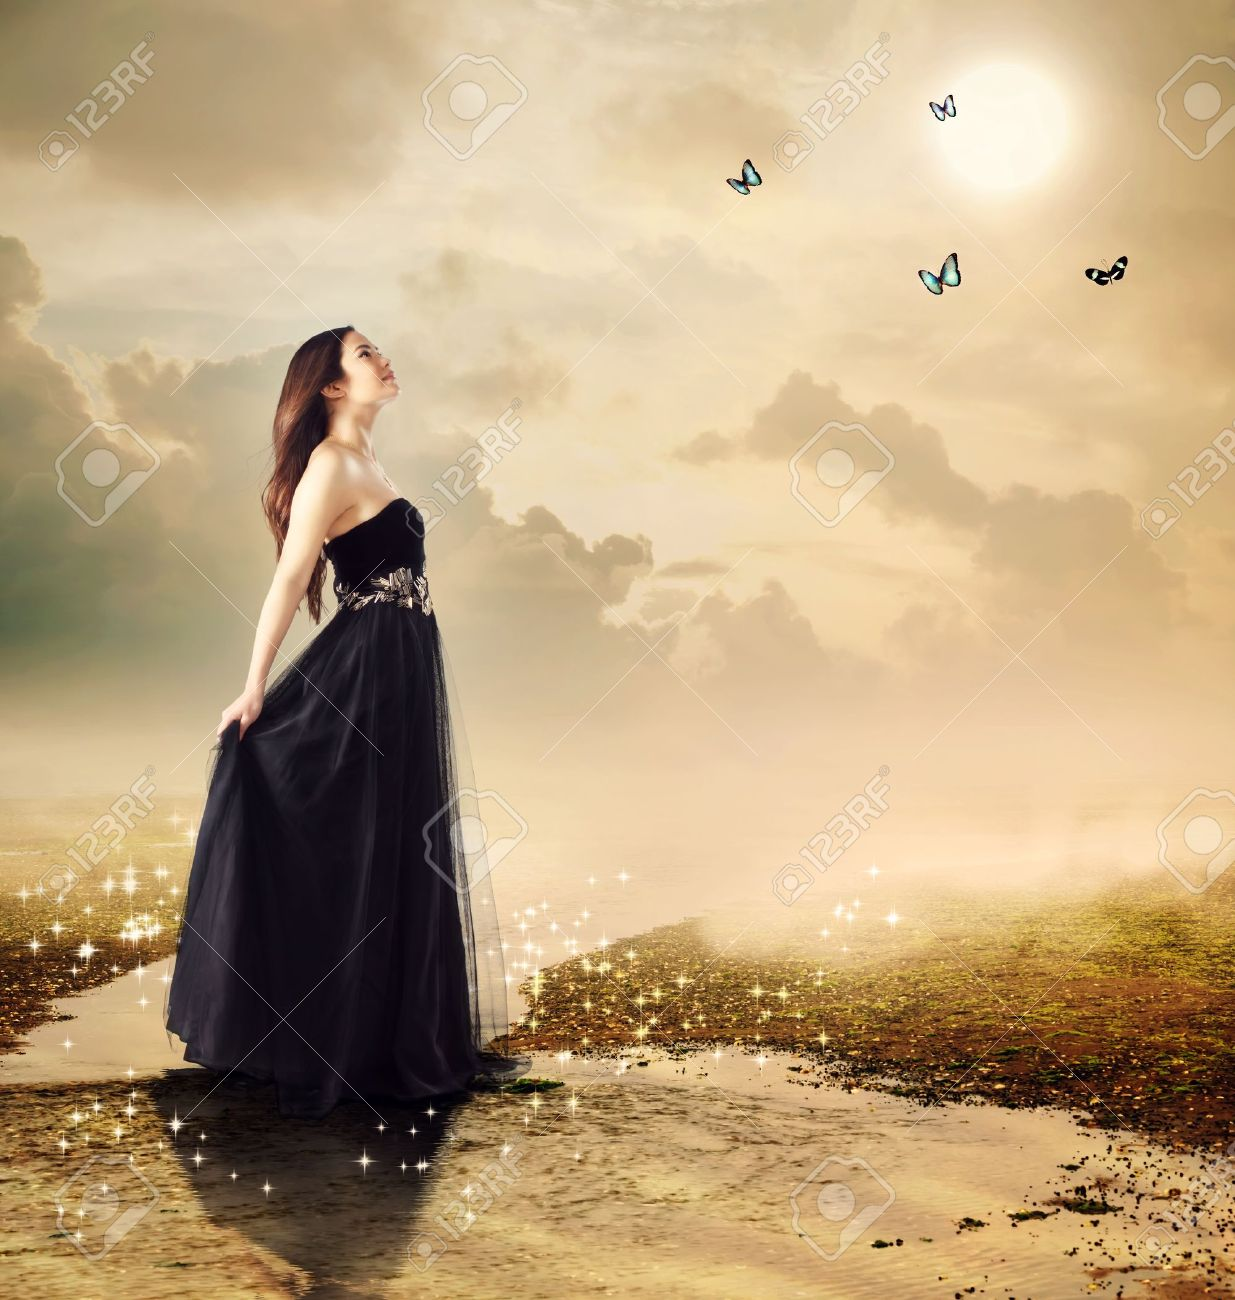 Beautiful girl at a brook under the moon light (with butterflies) Stock Photo - 17640459